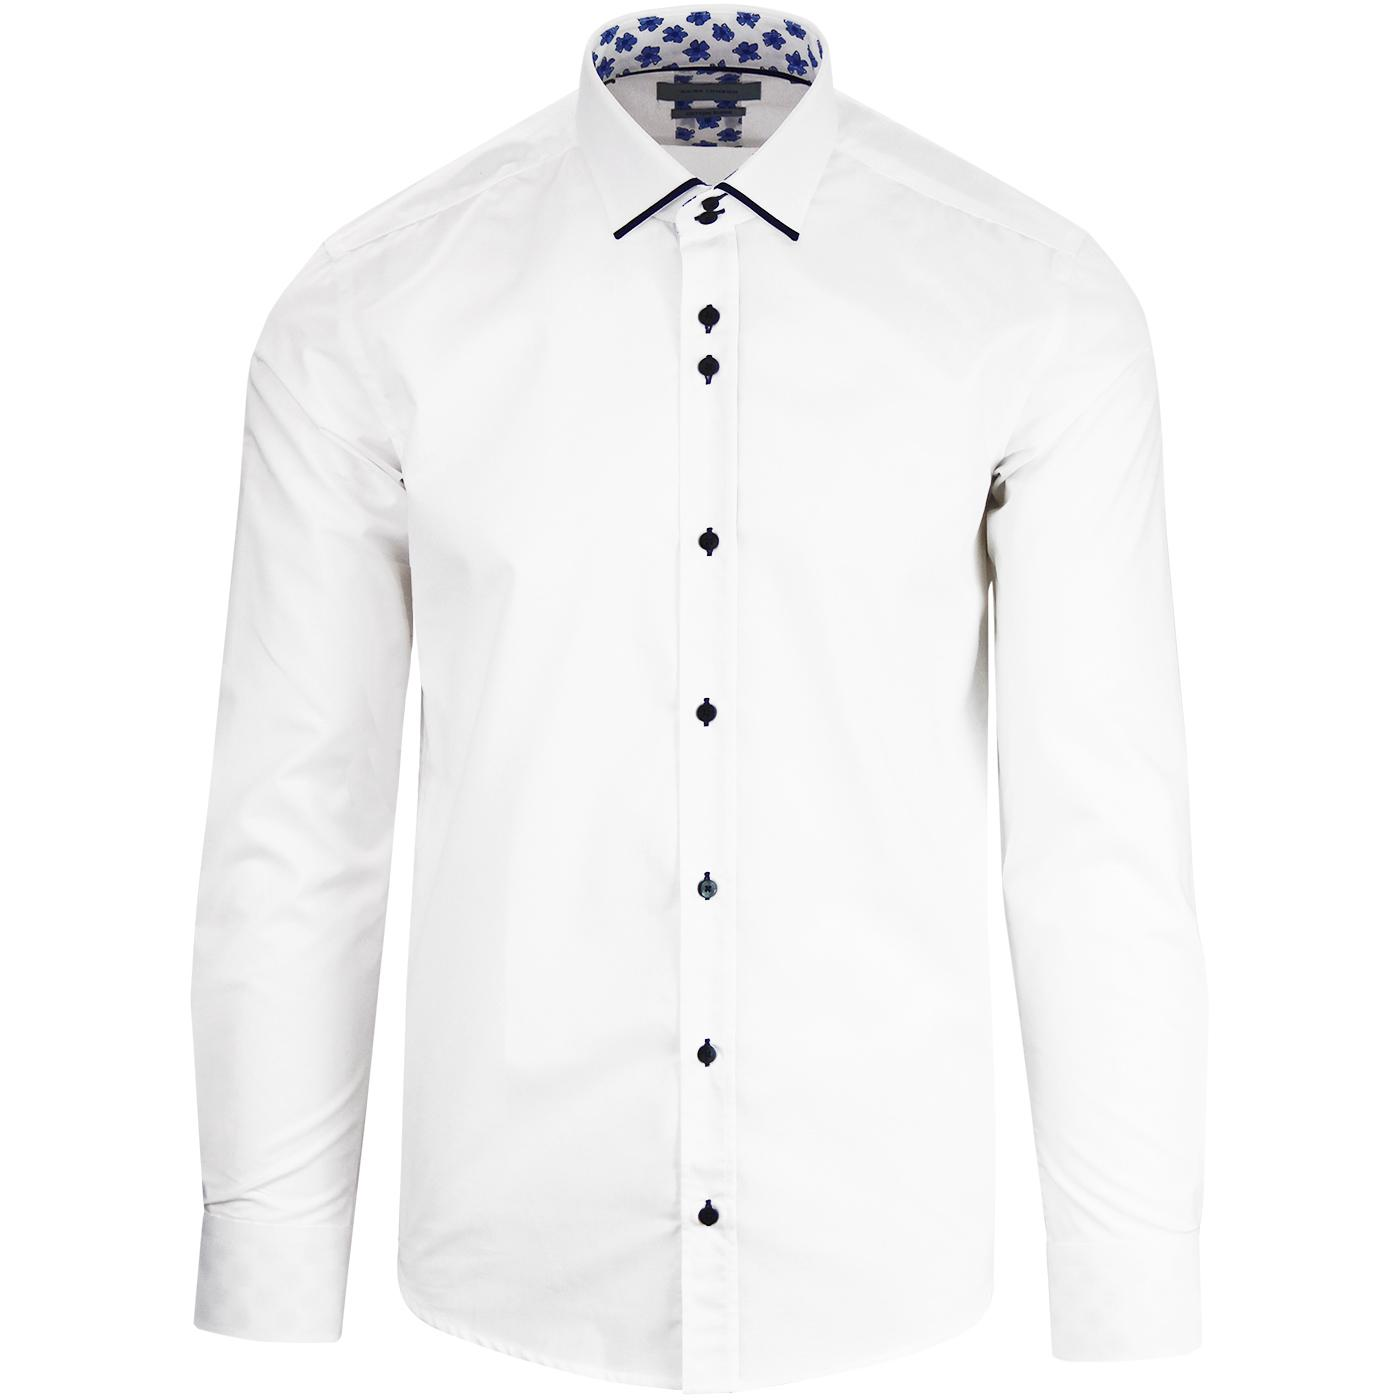 GUIDE LONDON Mod Piping Collar Plain Shirt WHITE